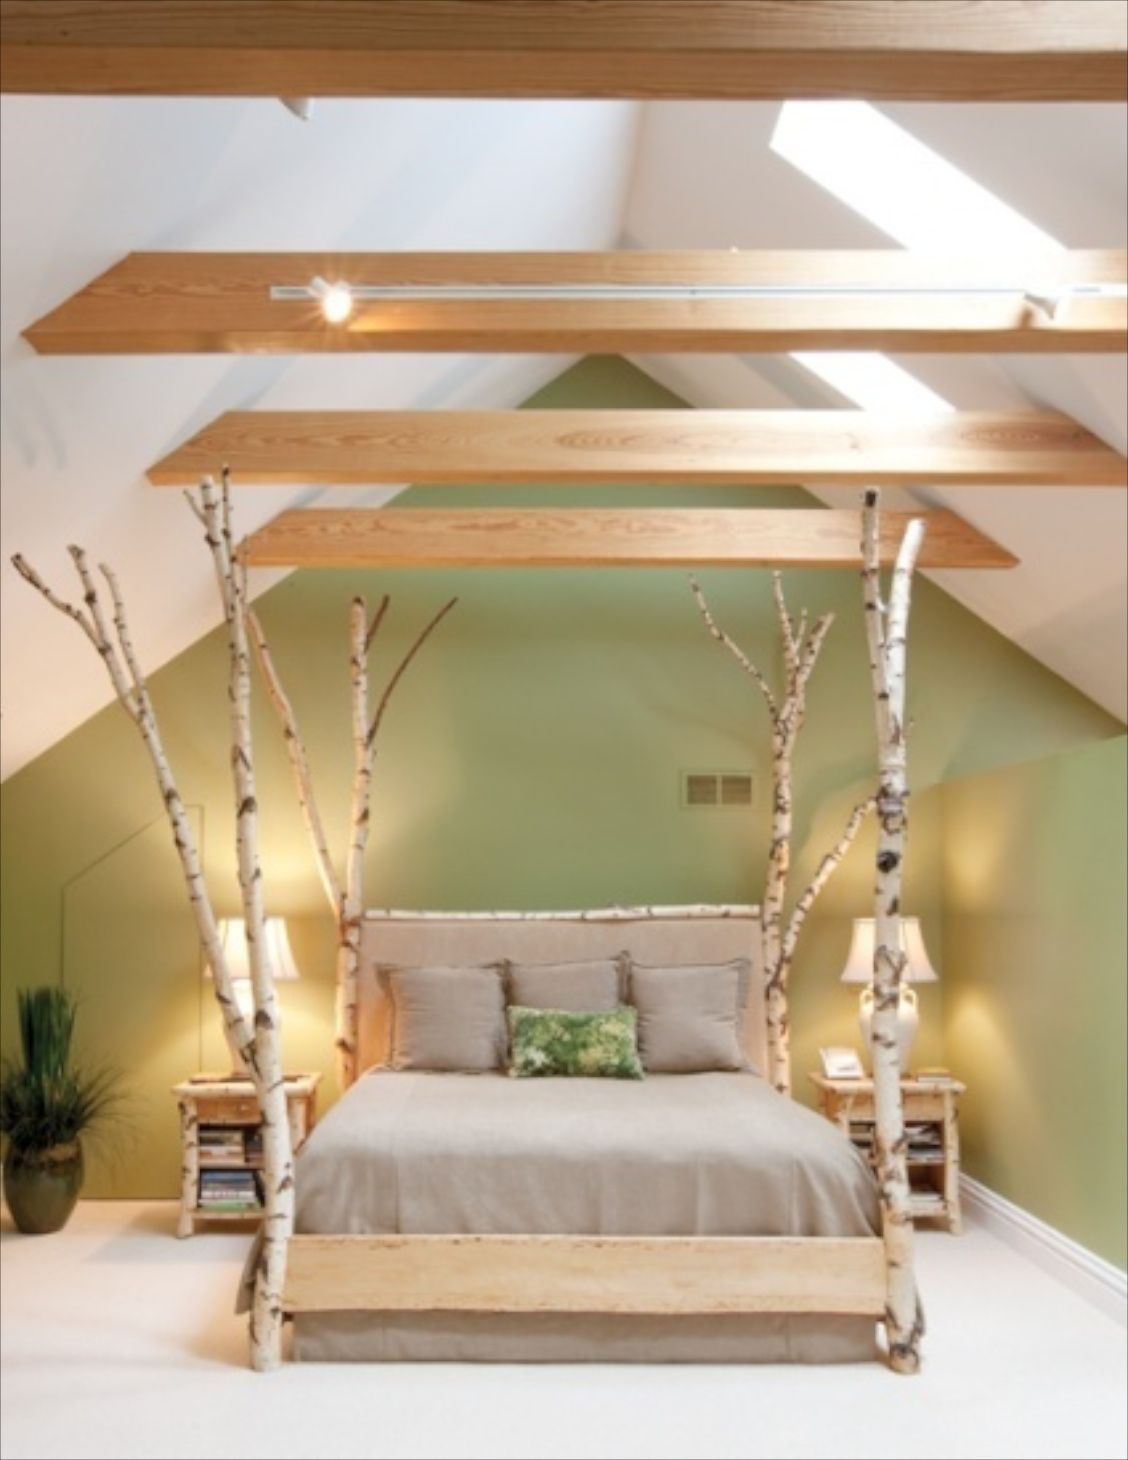 white tree branch bed frame | Extravagant Tree Branches | Bed frame design, Tree bed ...